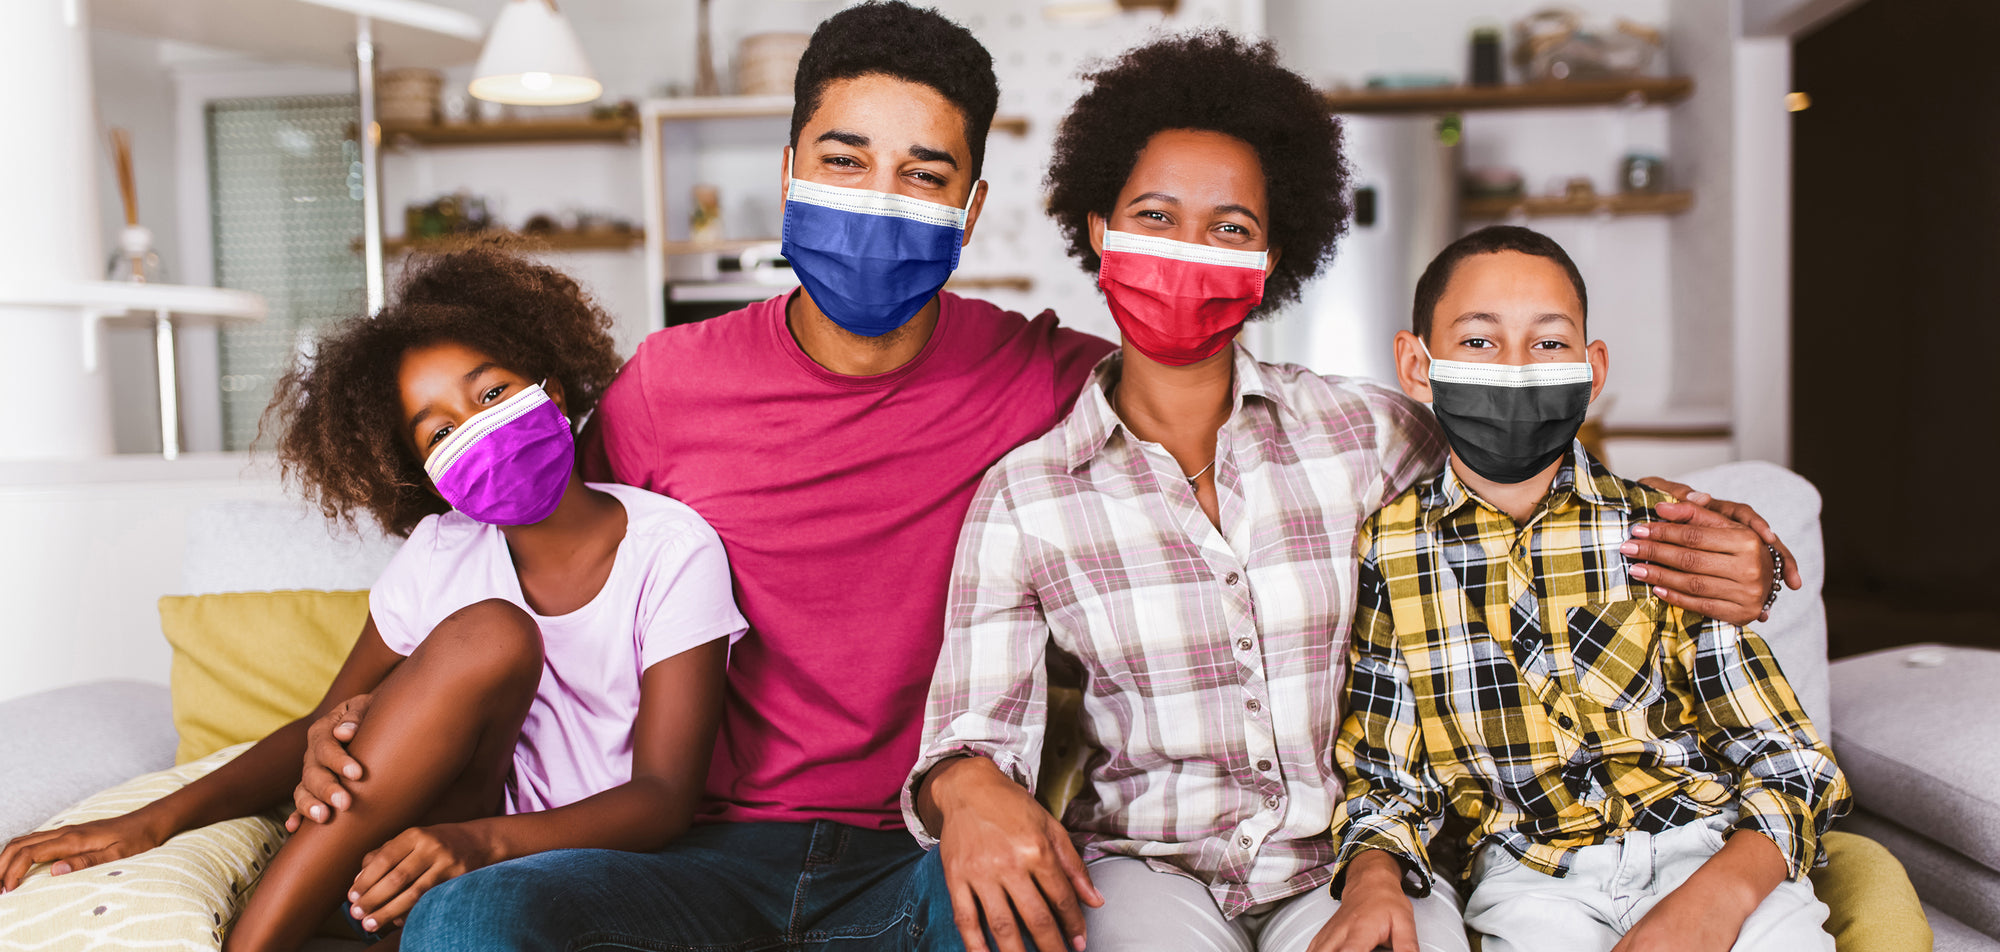 USA Made PPE, Face Masks for Kids, Face Masks for Children, Made in the USA, travel masks, disposable, Small Masks, ASTM Level 3,  Polypropylene, Surgical , Mask for Kids, Lutema, WeCare, N95, Best Face Mask, KN95 for Kids, Face Masks for kids, Face Mask